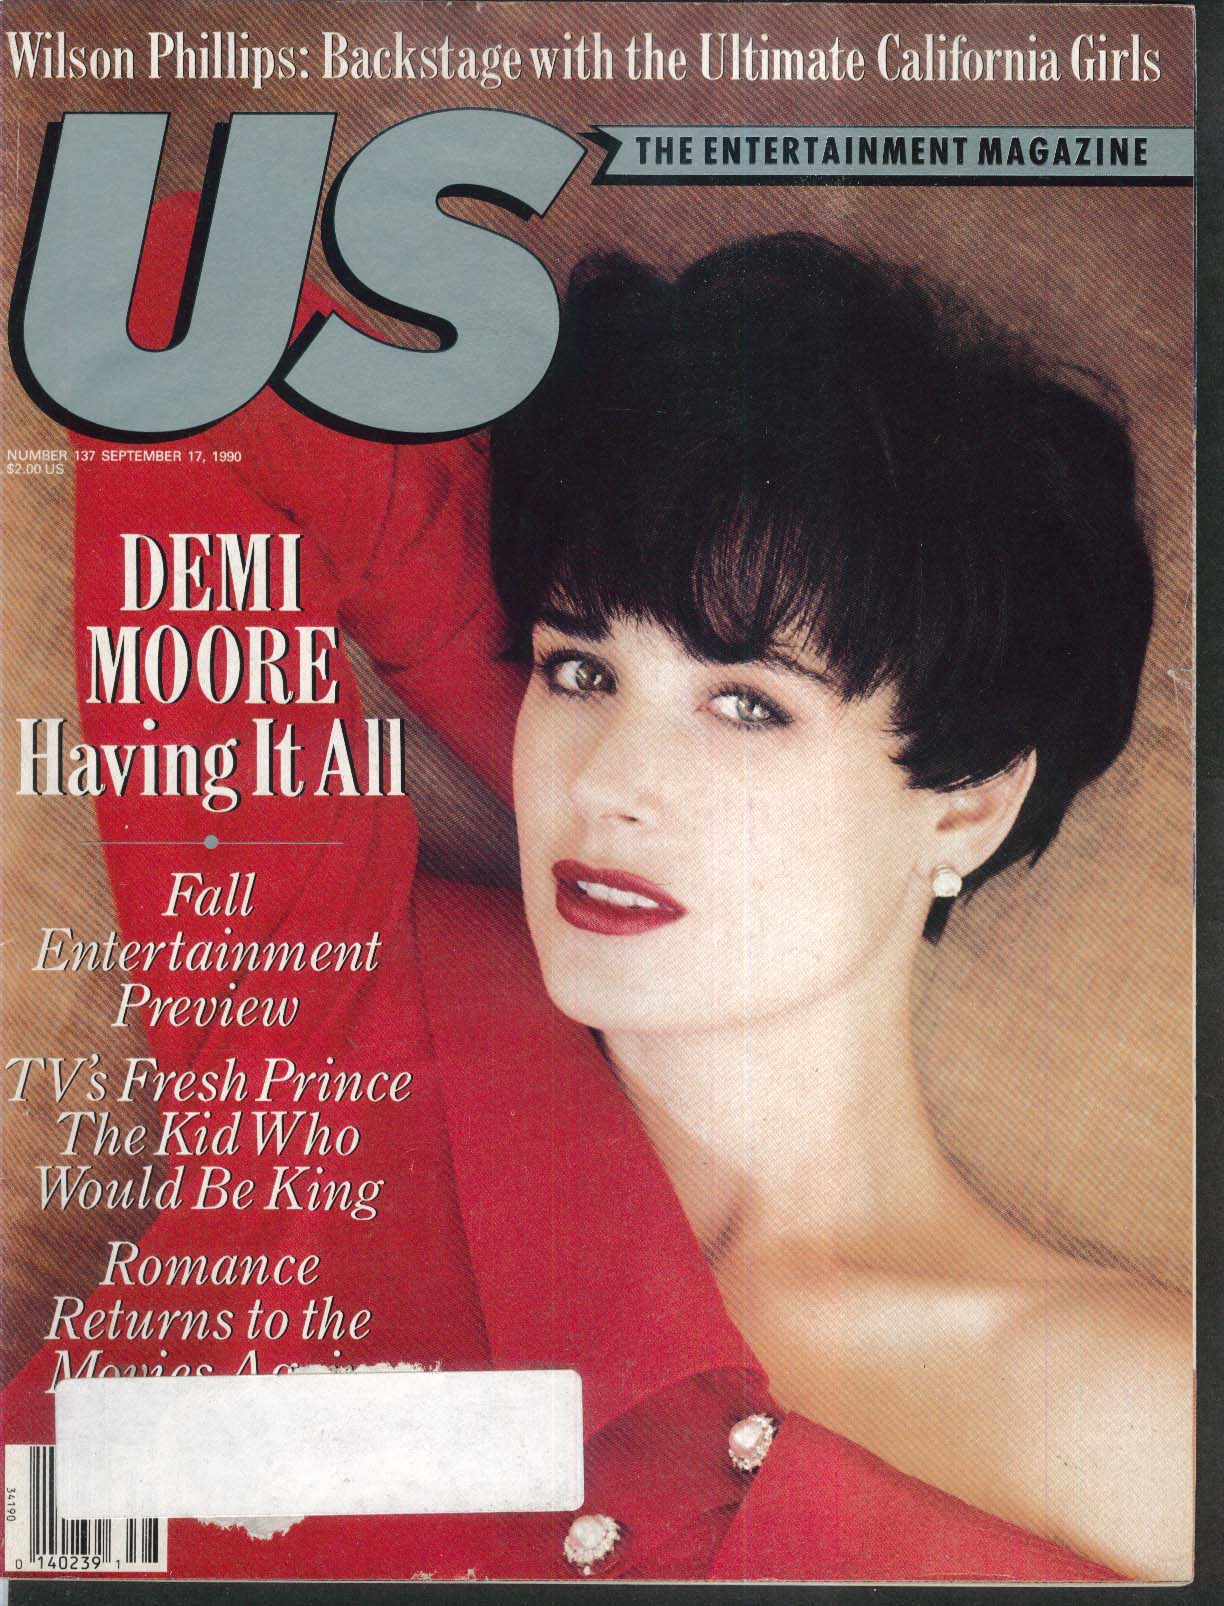 US Demi Moore Will Smith Wilson Phillips 9/17 1990